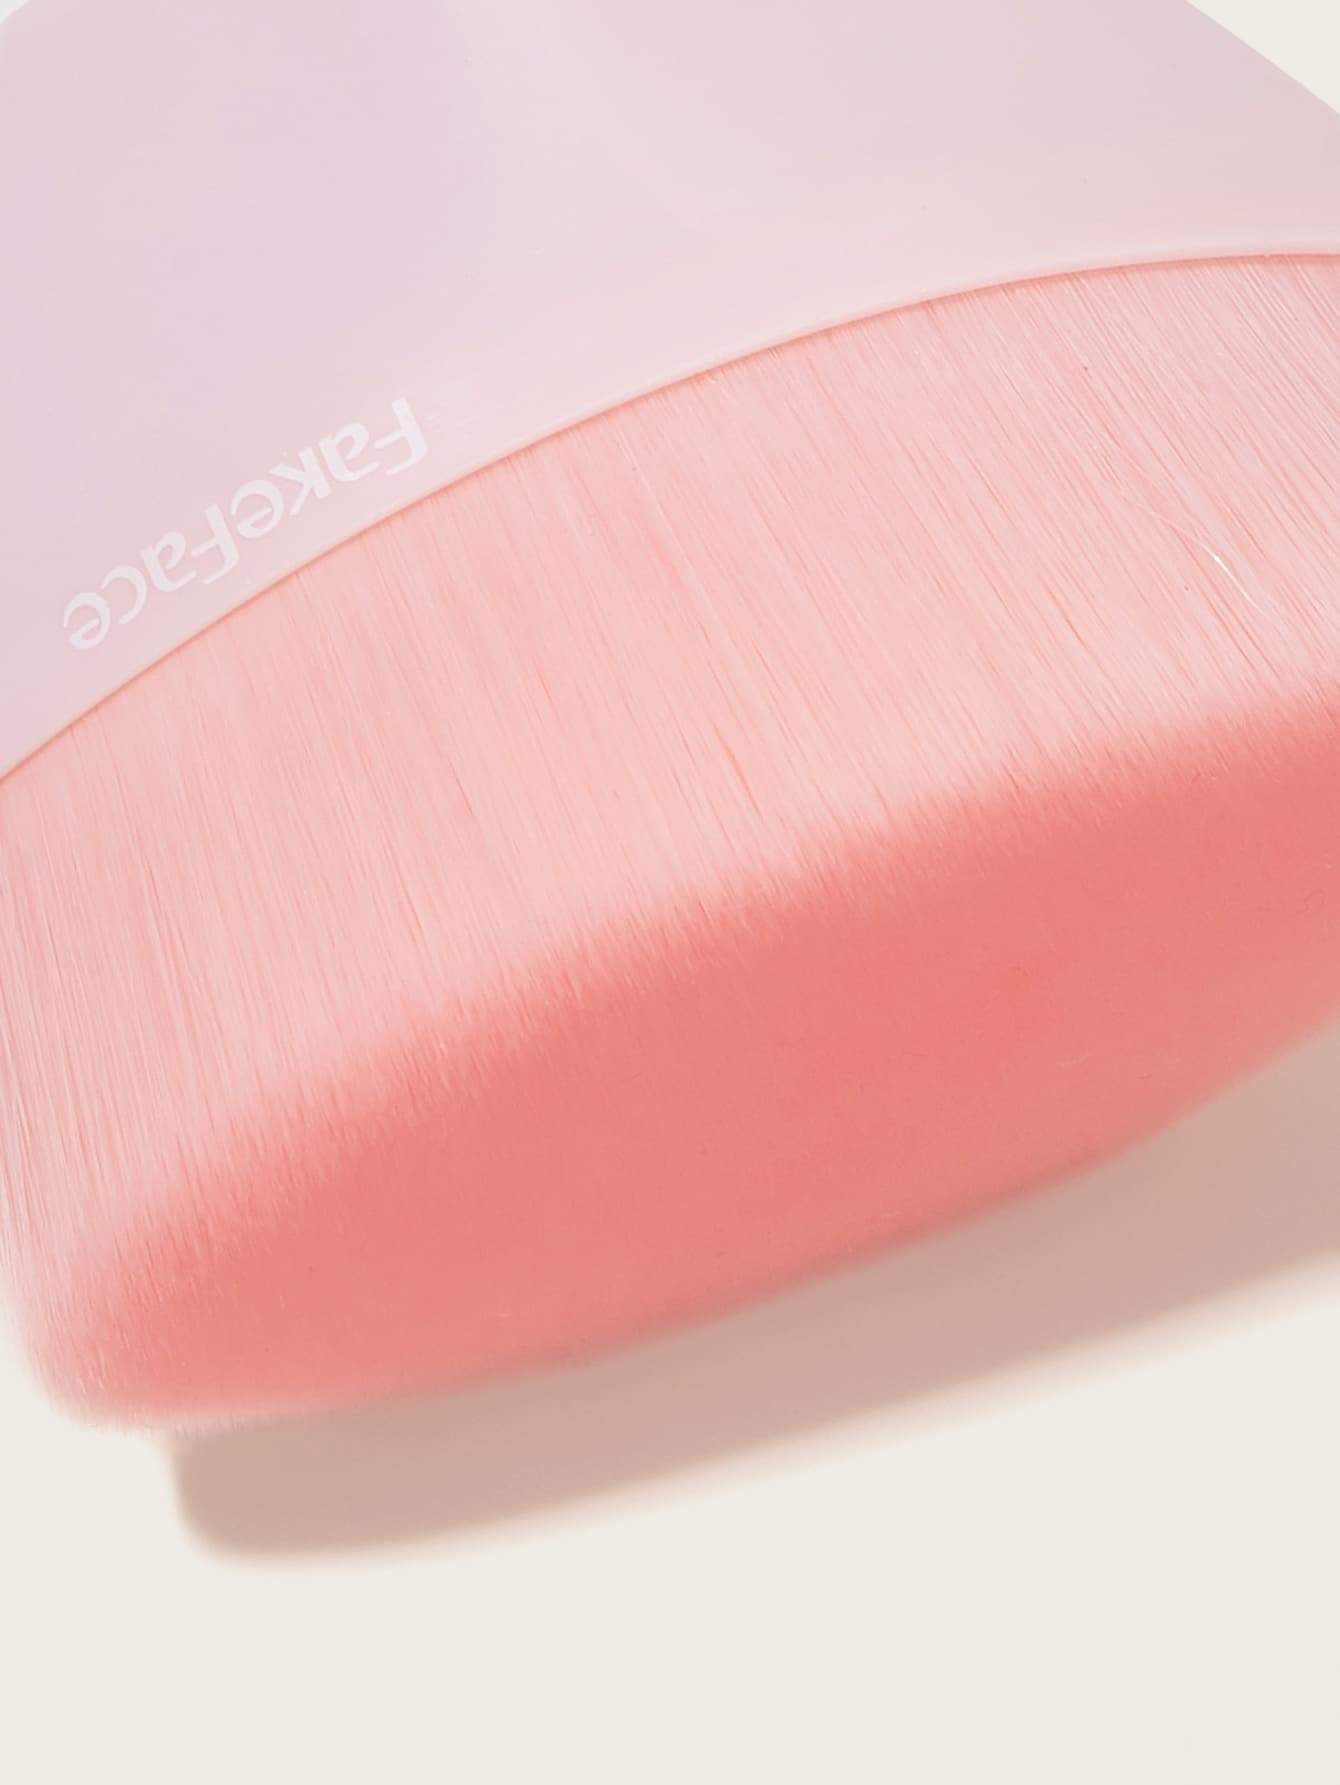 Big Powder Makeup Brush